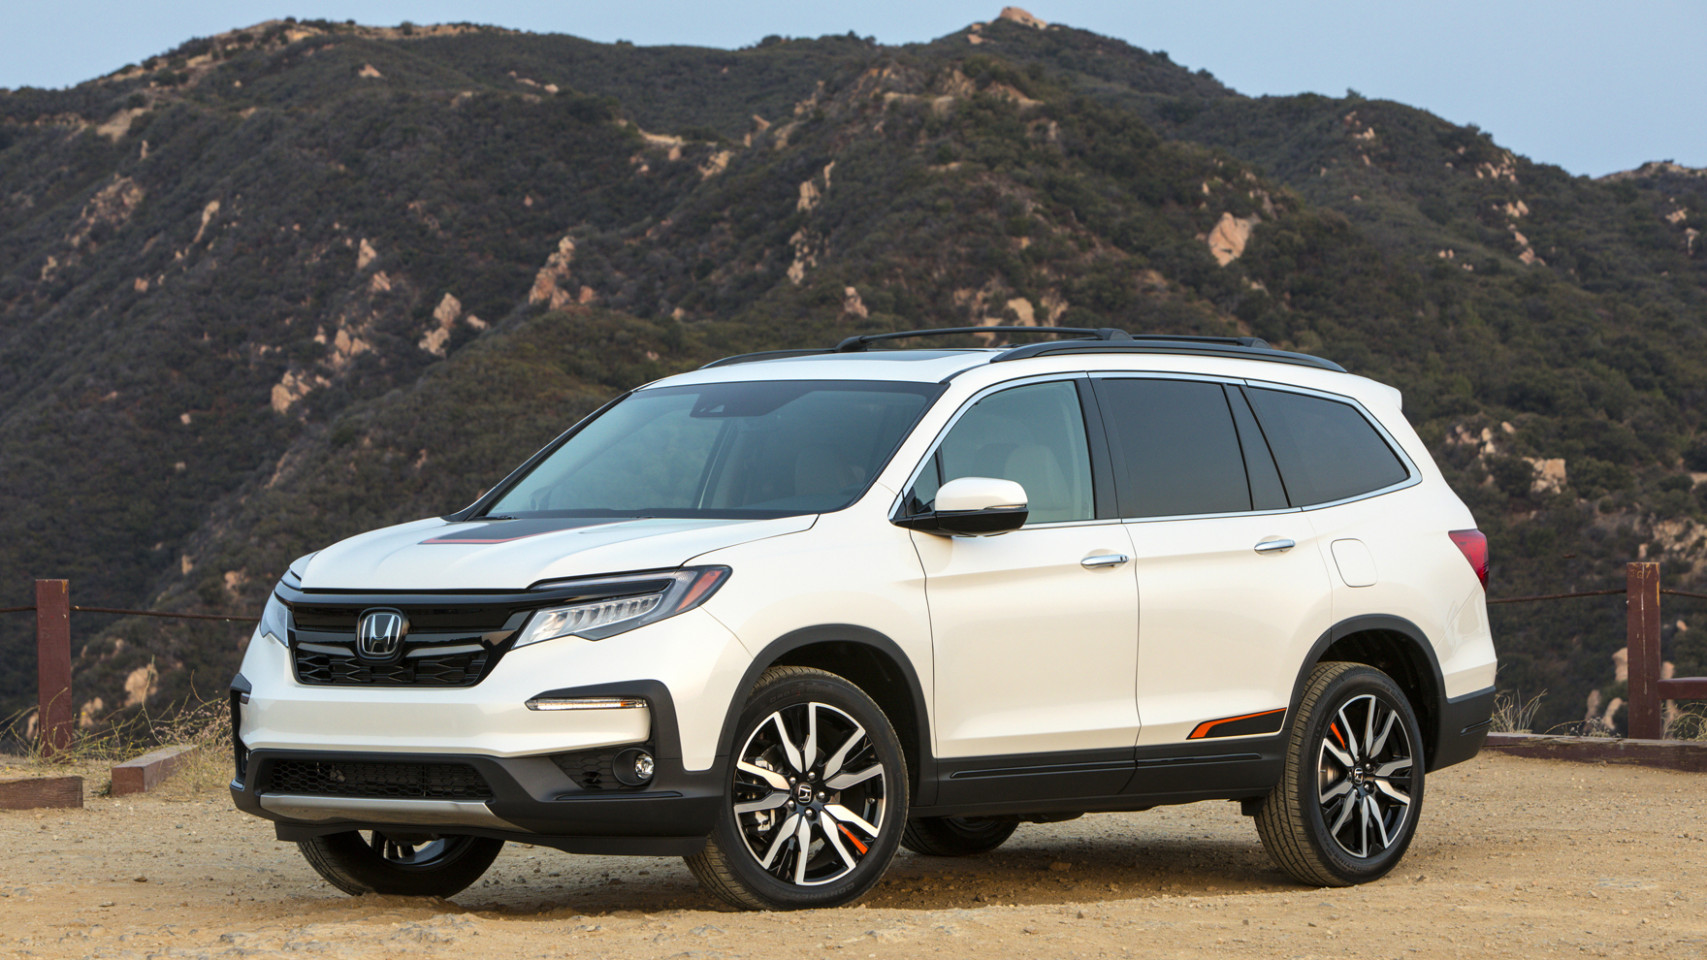 8 Honda Pilot Review | Price, fuel economy, features and photos ...